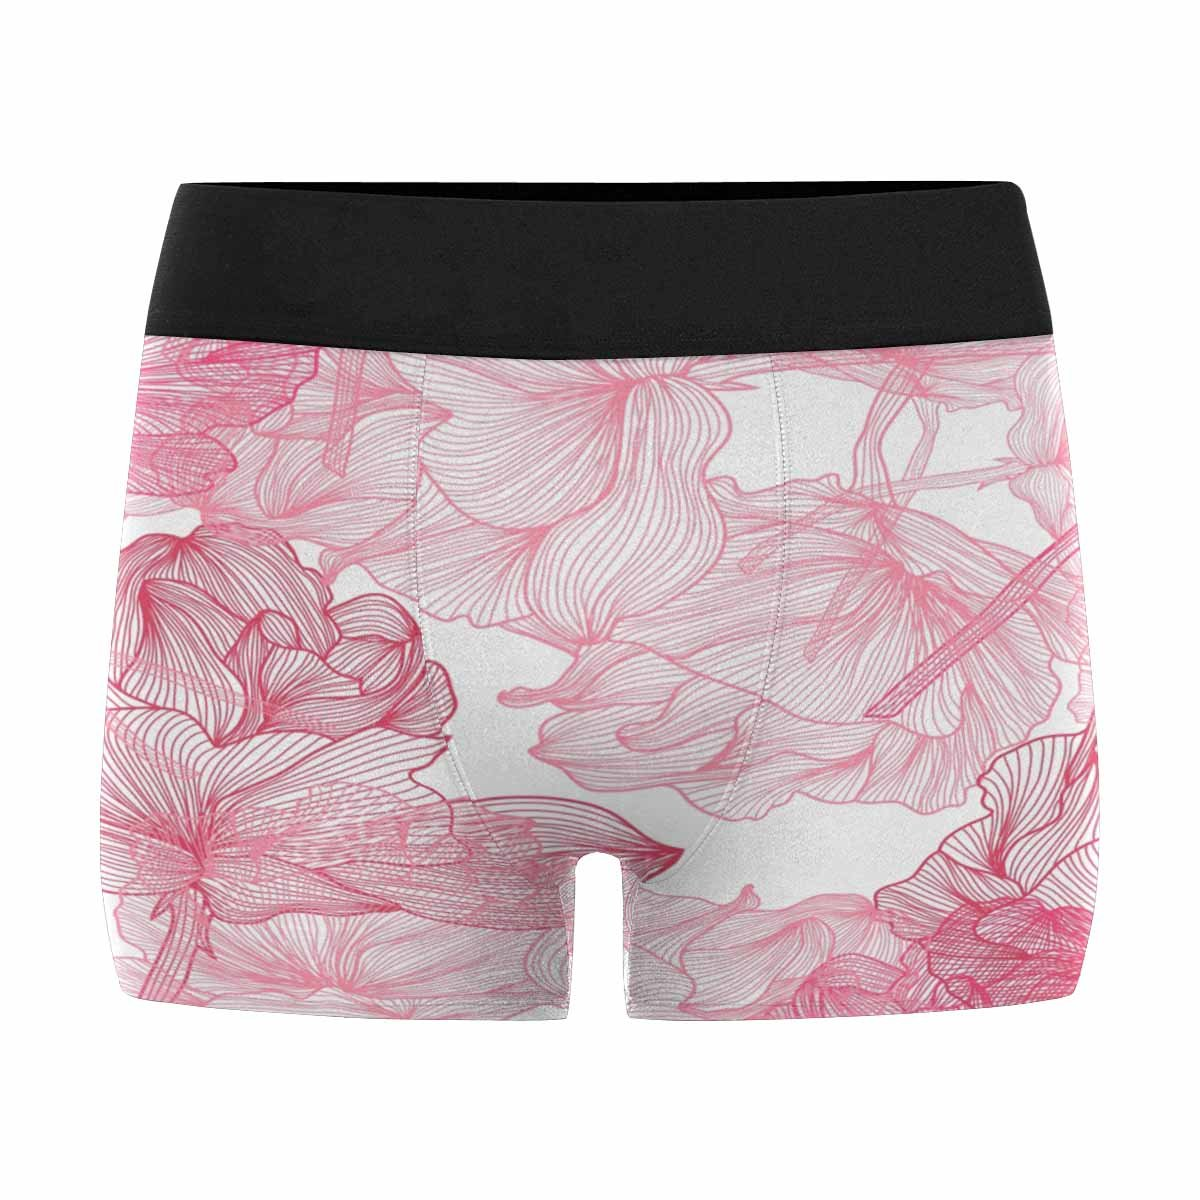 INTERESTPRINT Boxer Briefs Mens Underwear Elegant Pattern with Beautiful Pink Roses for Your Design XS-3XL